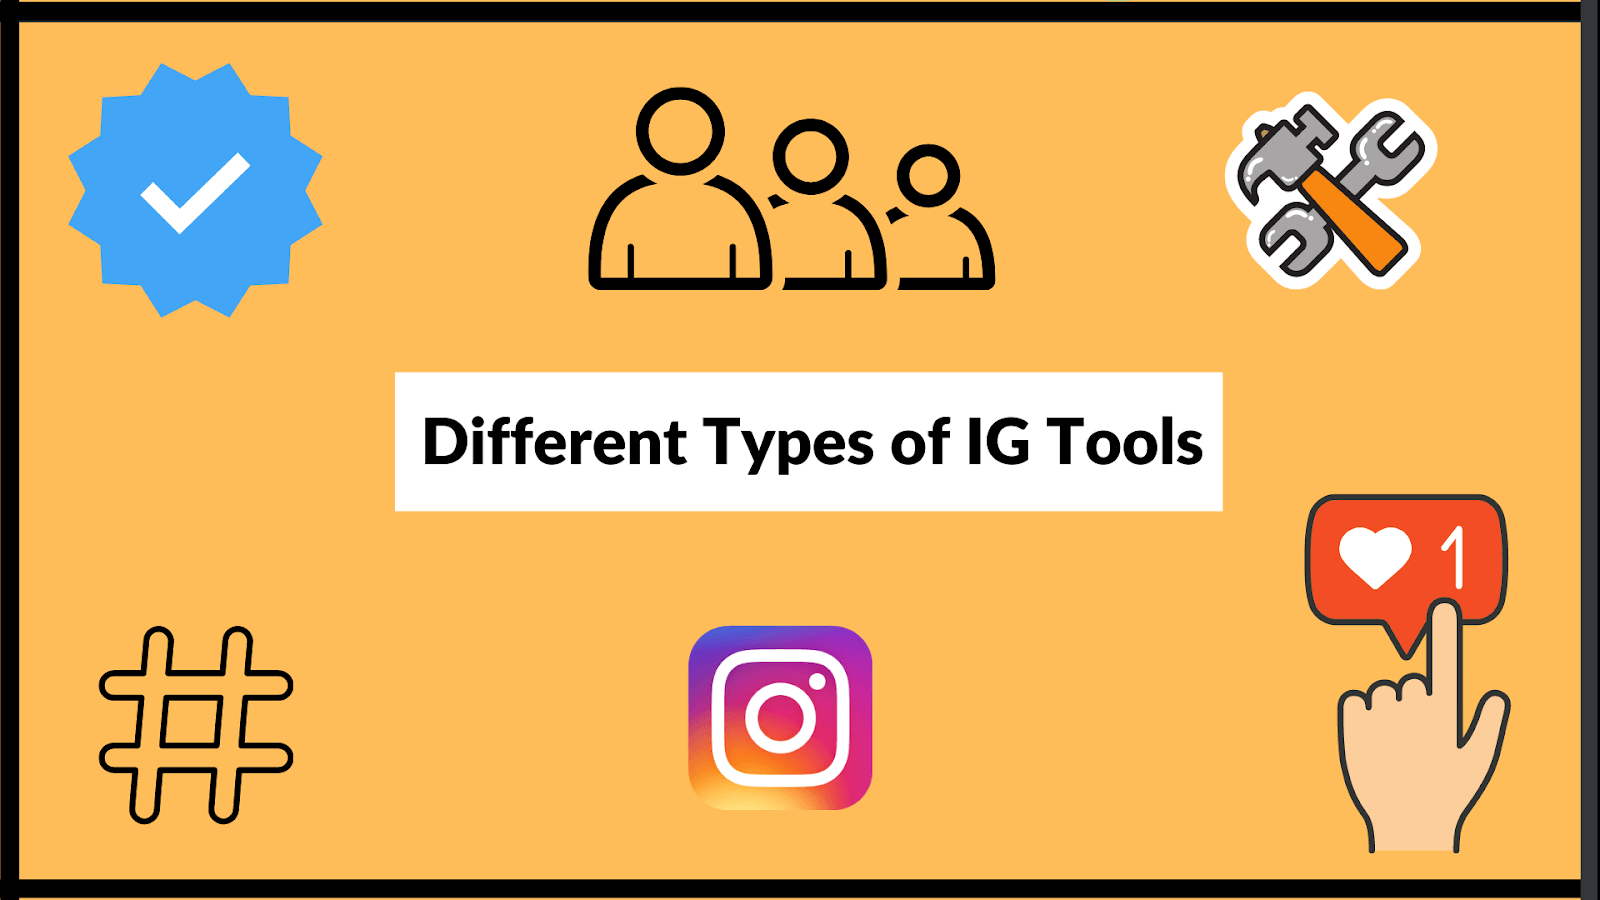 Learn about the different types of ig tools and how they can help you to grow your following